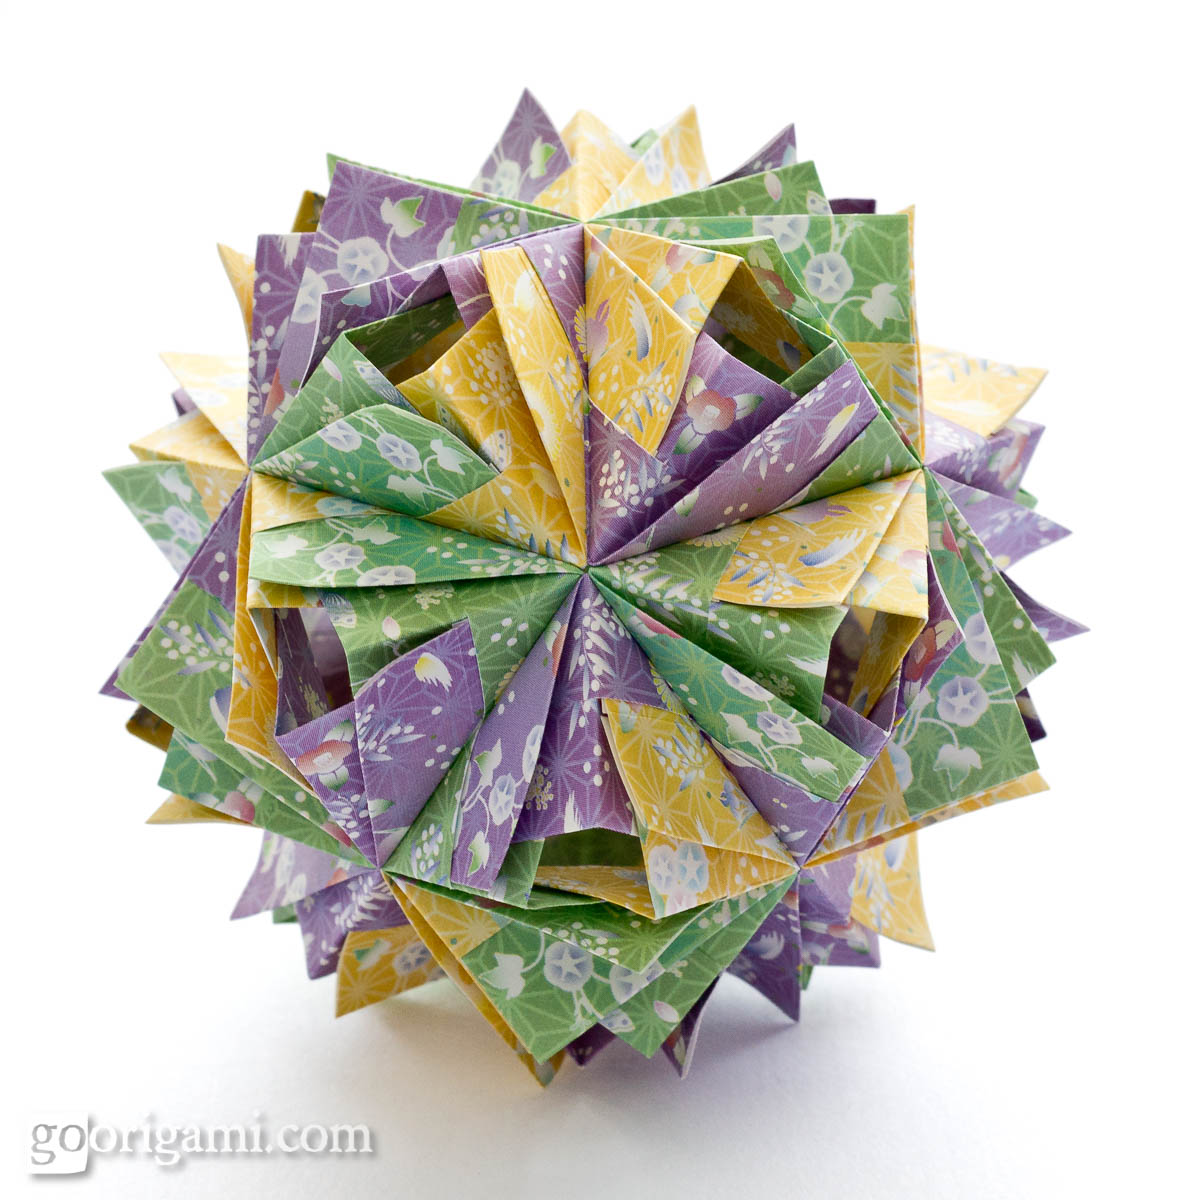 Origami diagrams by maria sinayskaya go origami these origami diagrams are offered under the terms of the creative commons attribution noncommercial noderivs 30 unported license pooptronica